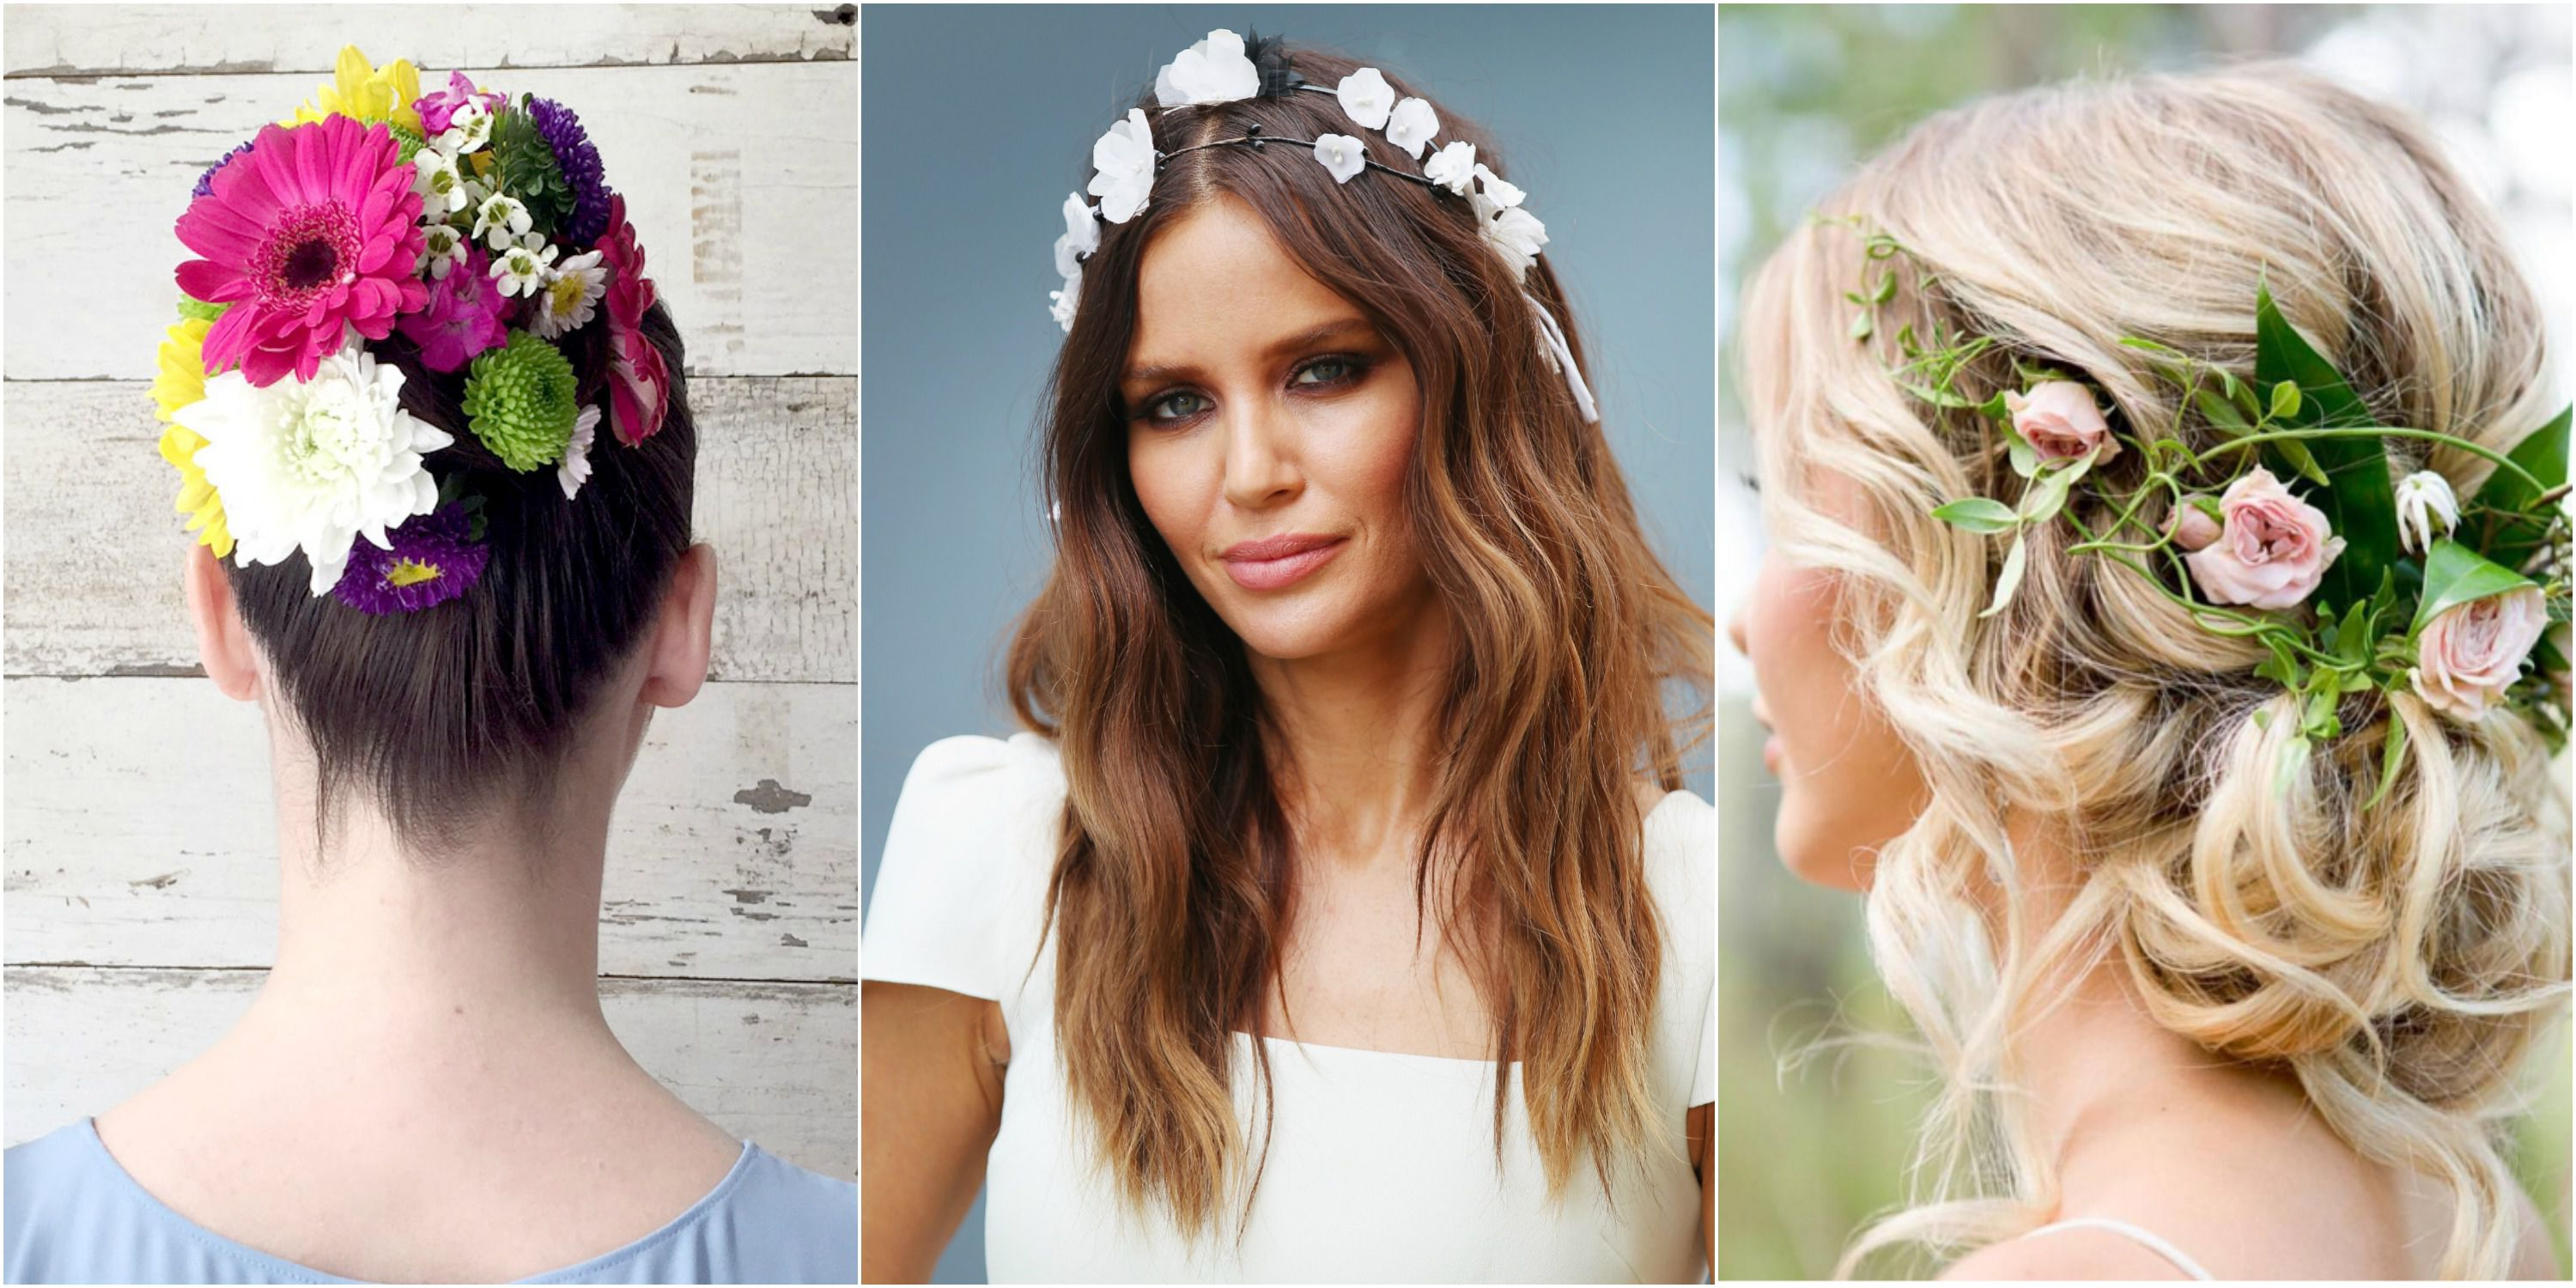 Newest Floral Braid Crowns Hairstyles For Prom Intended For 12 Pretty Flower Crowns And Floral Hairstyles — Flower Hairstyles (View 16 of 20)